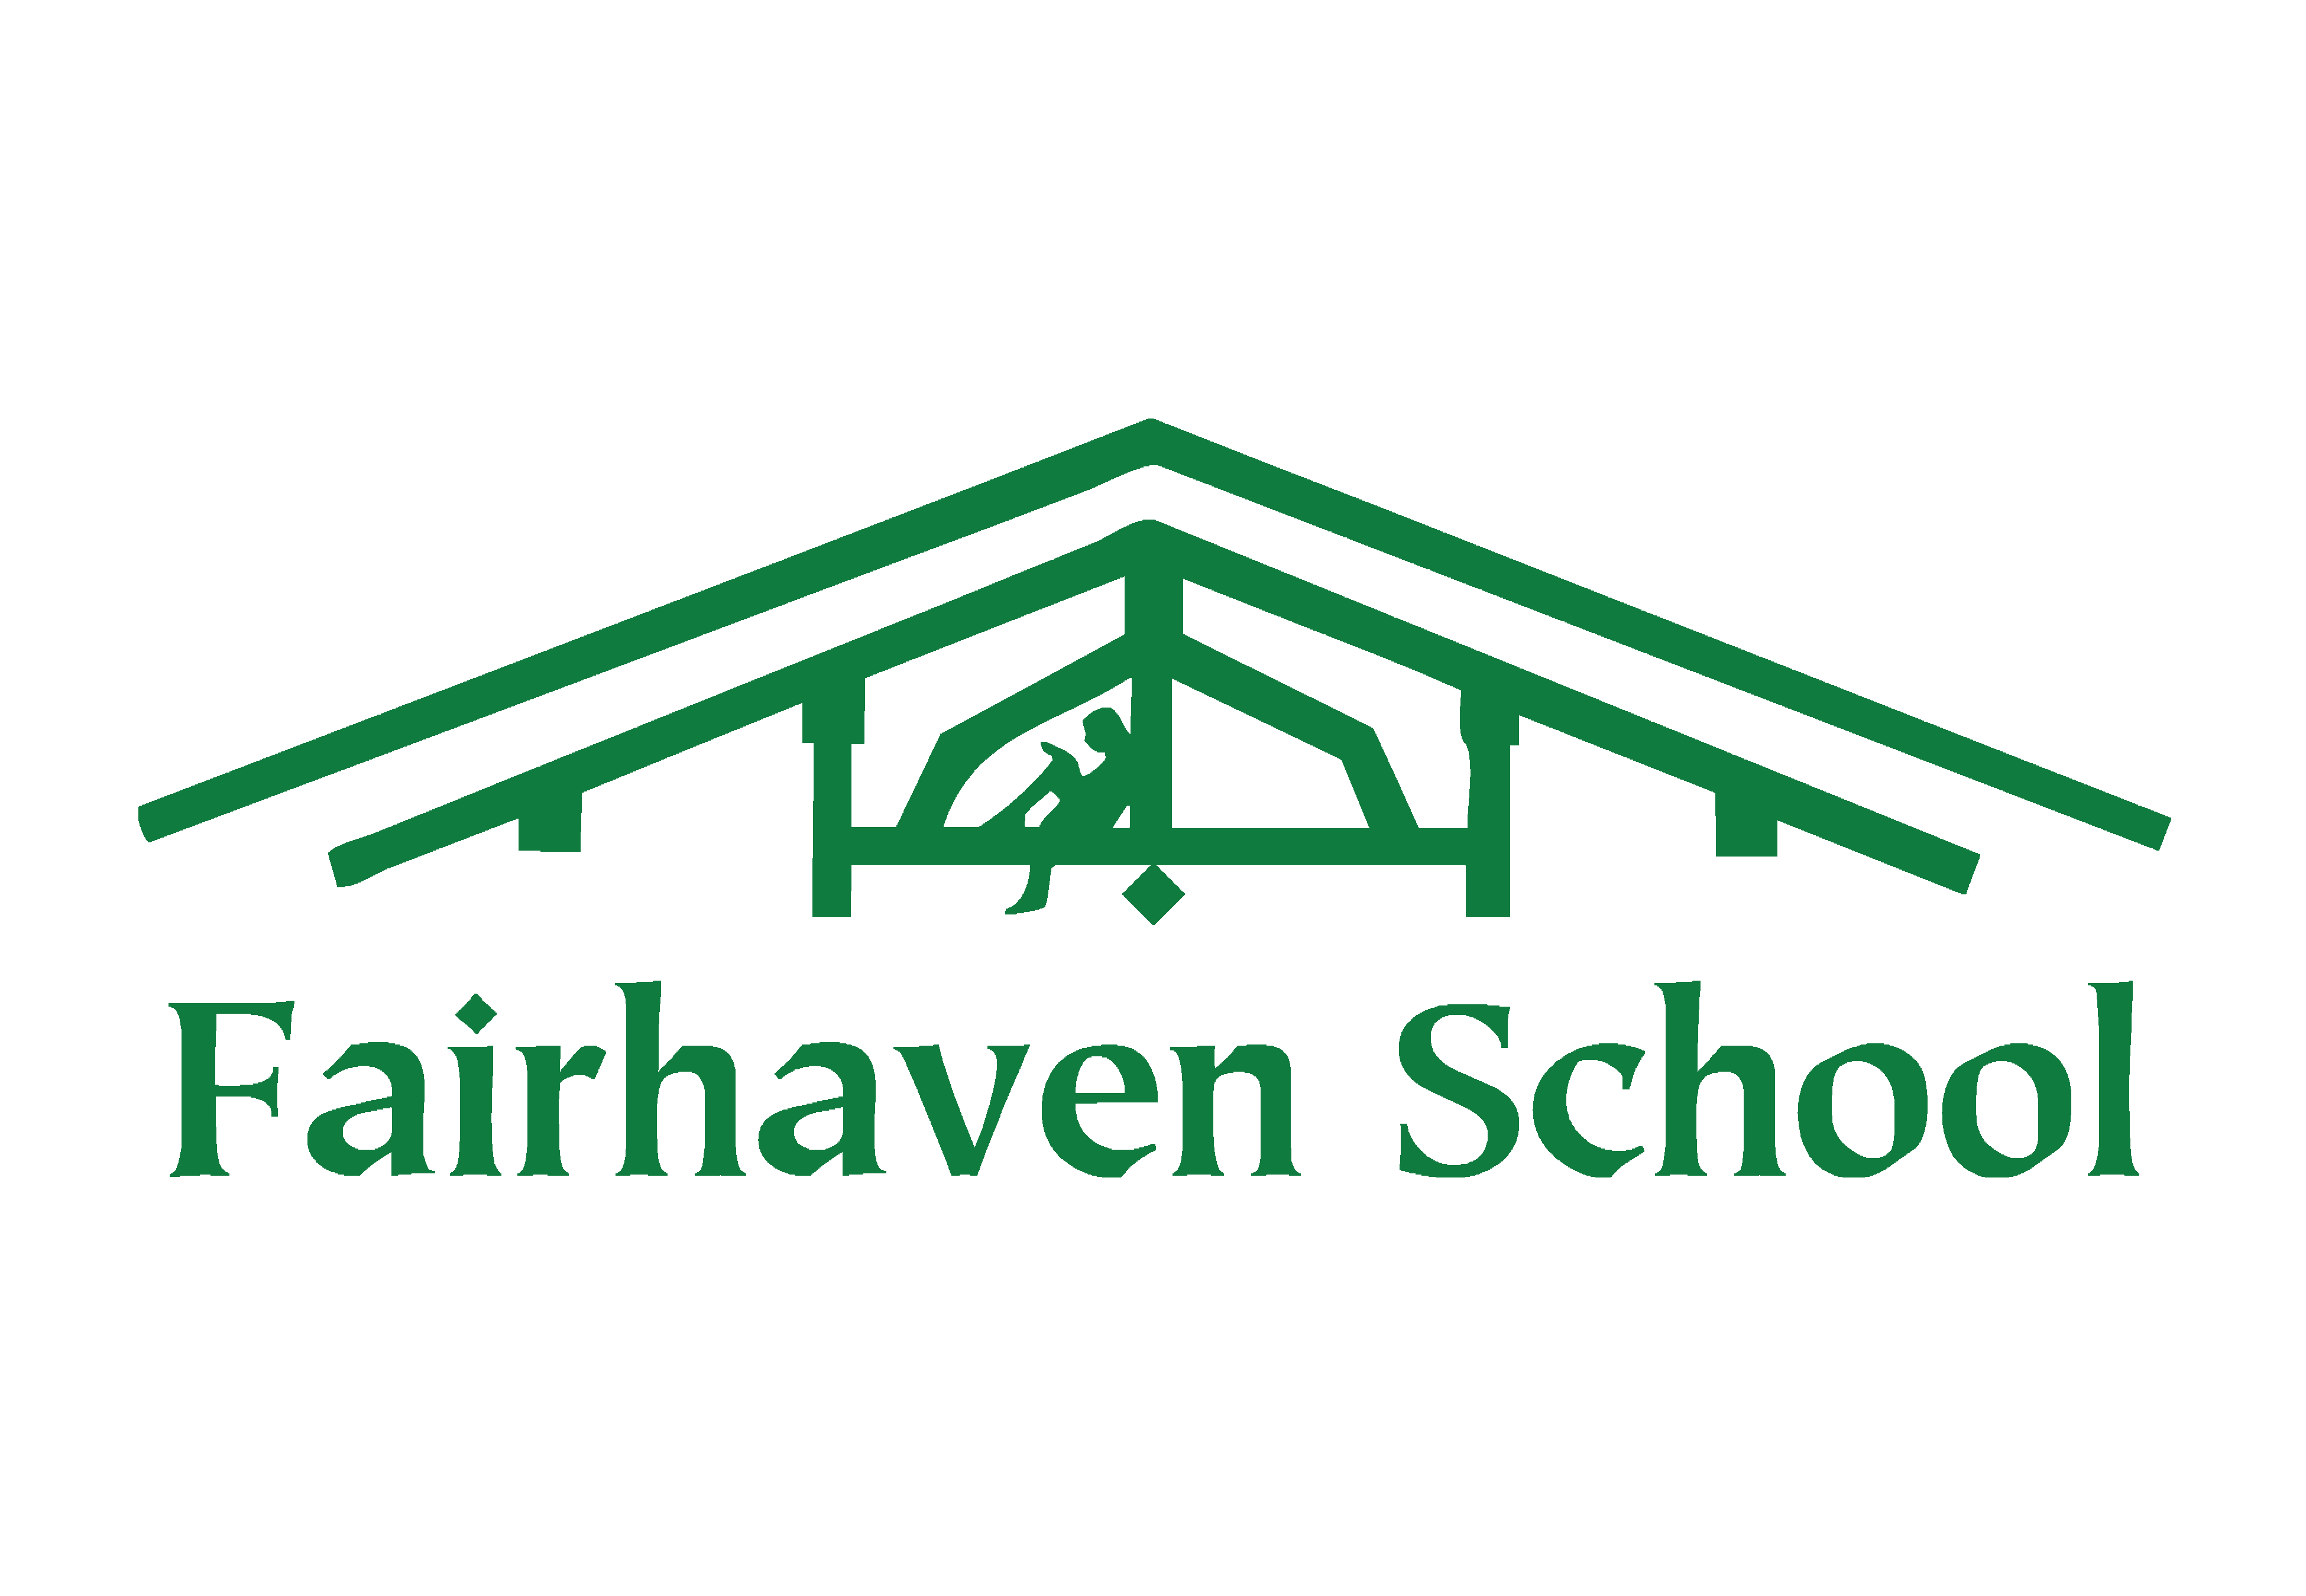 Fairhaven School logo